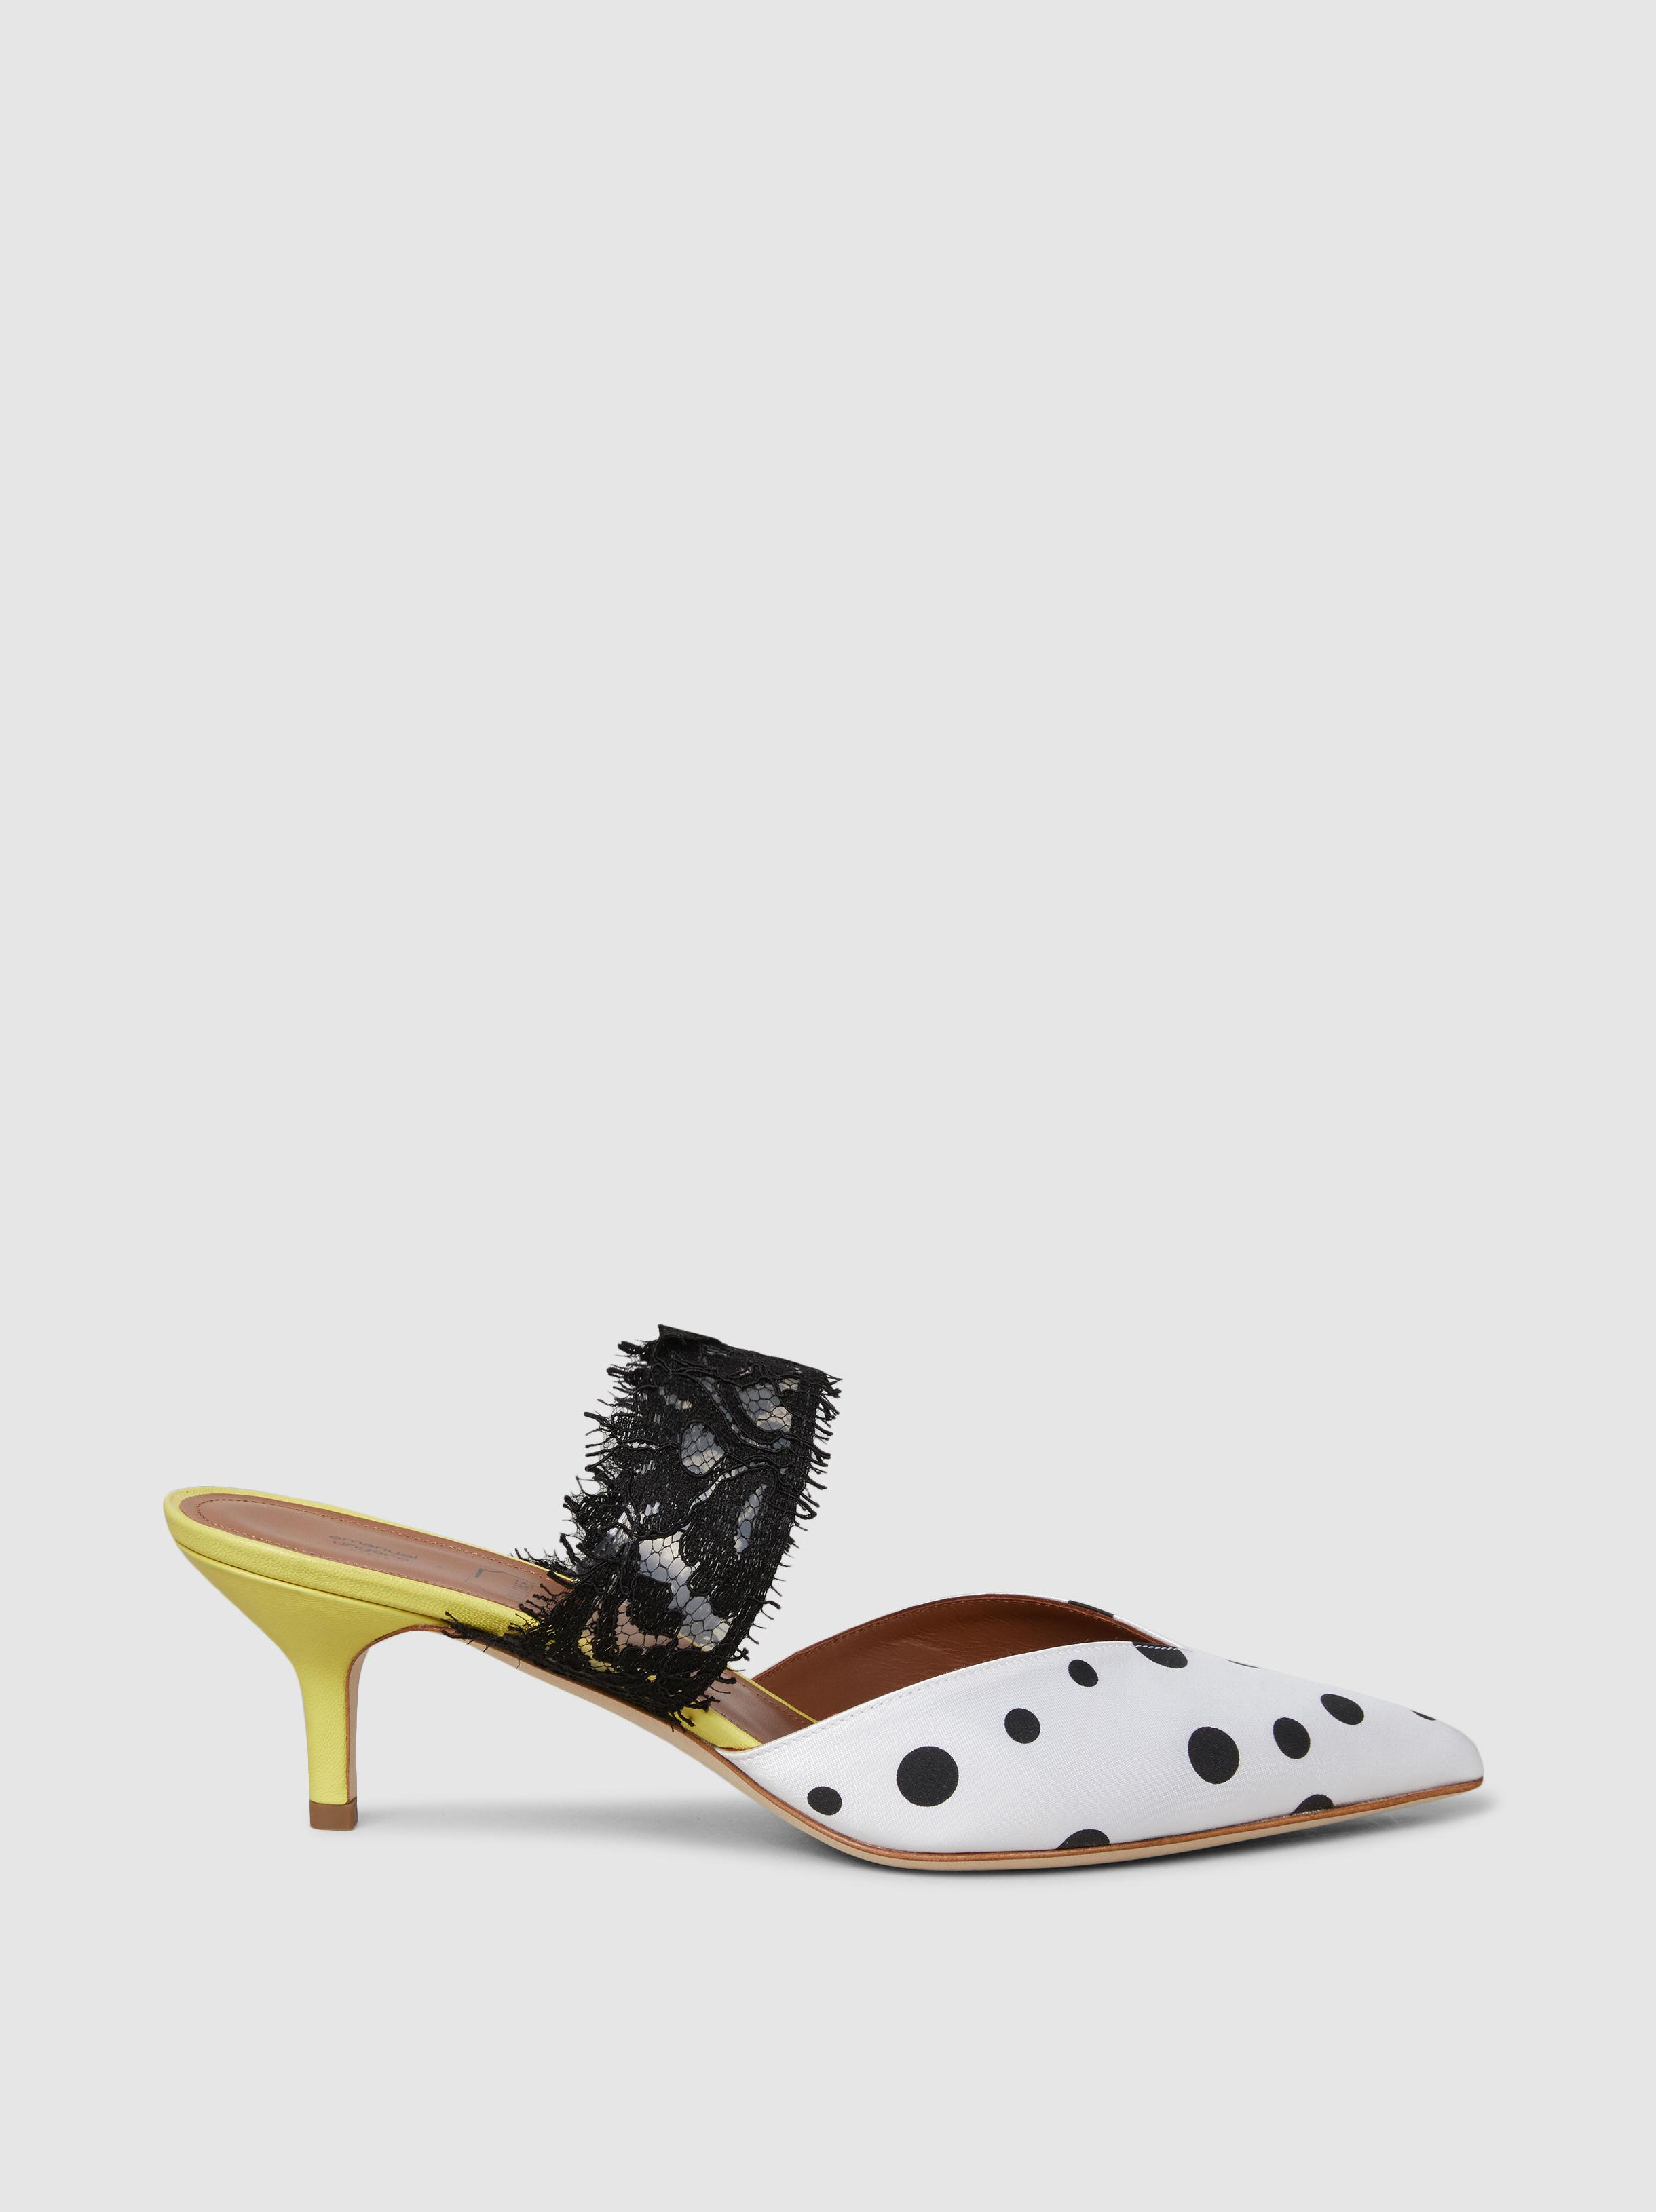 MALONE SOULIERS Maisie Satin and Lace Mules